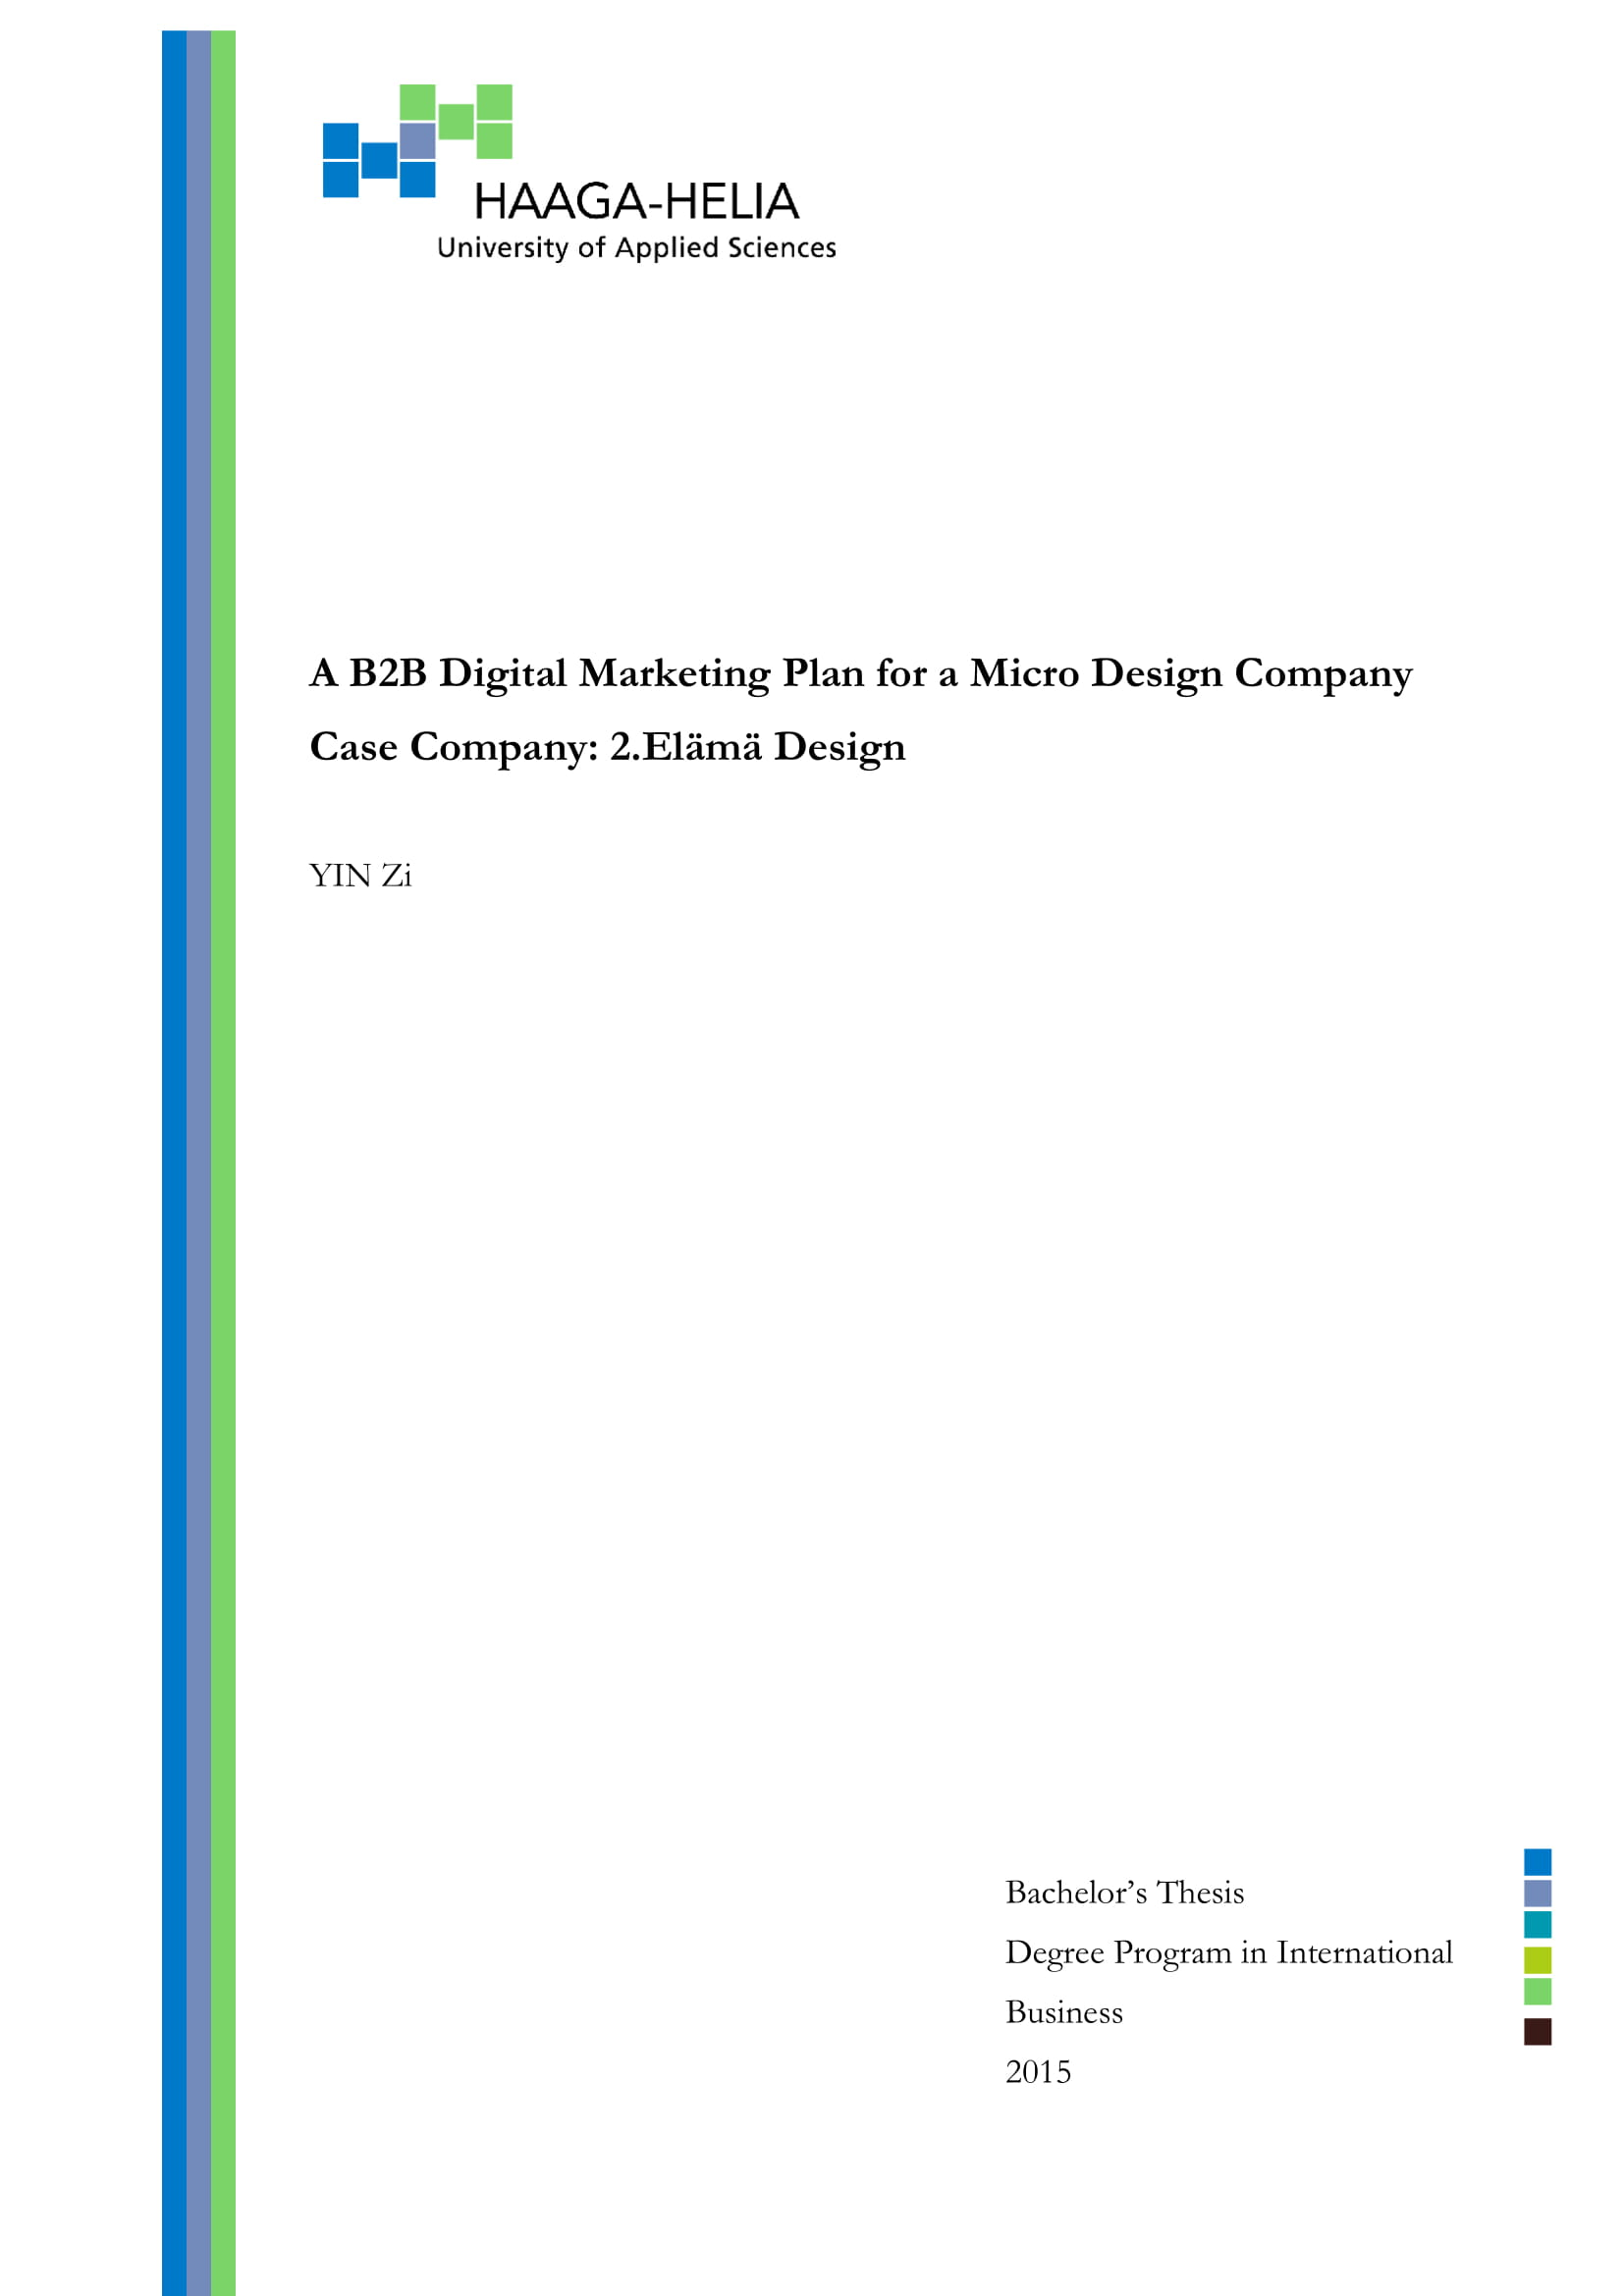 b2b marketing plan for micro design company example